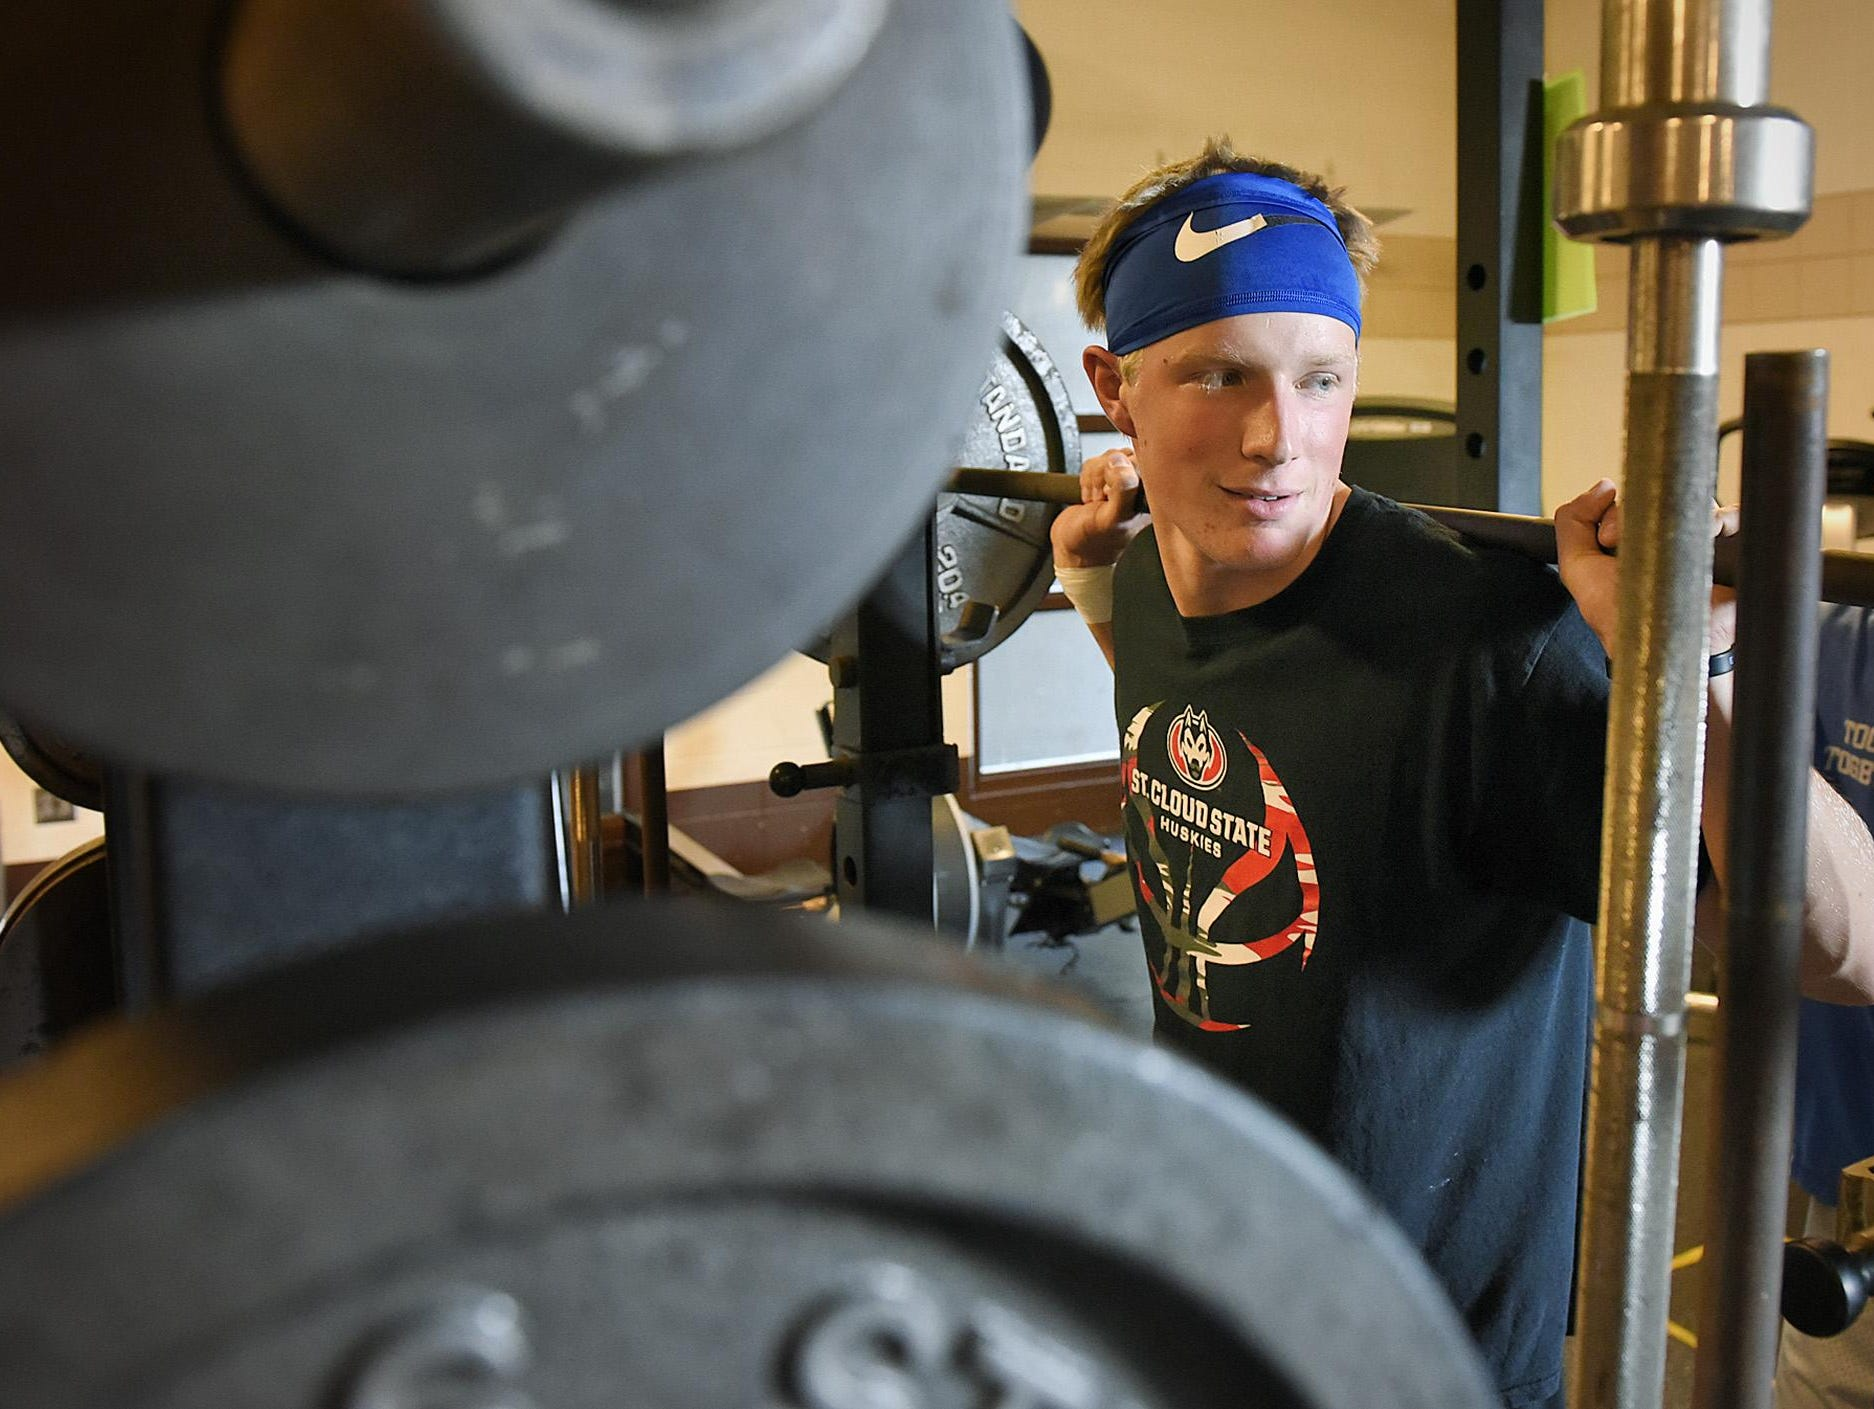 Foley quarterback Kyle Kipka lifts weights before practice Monday in Foley.